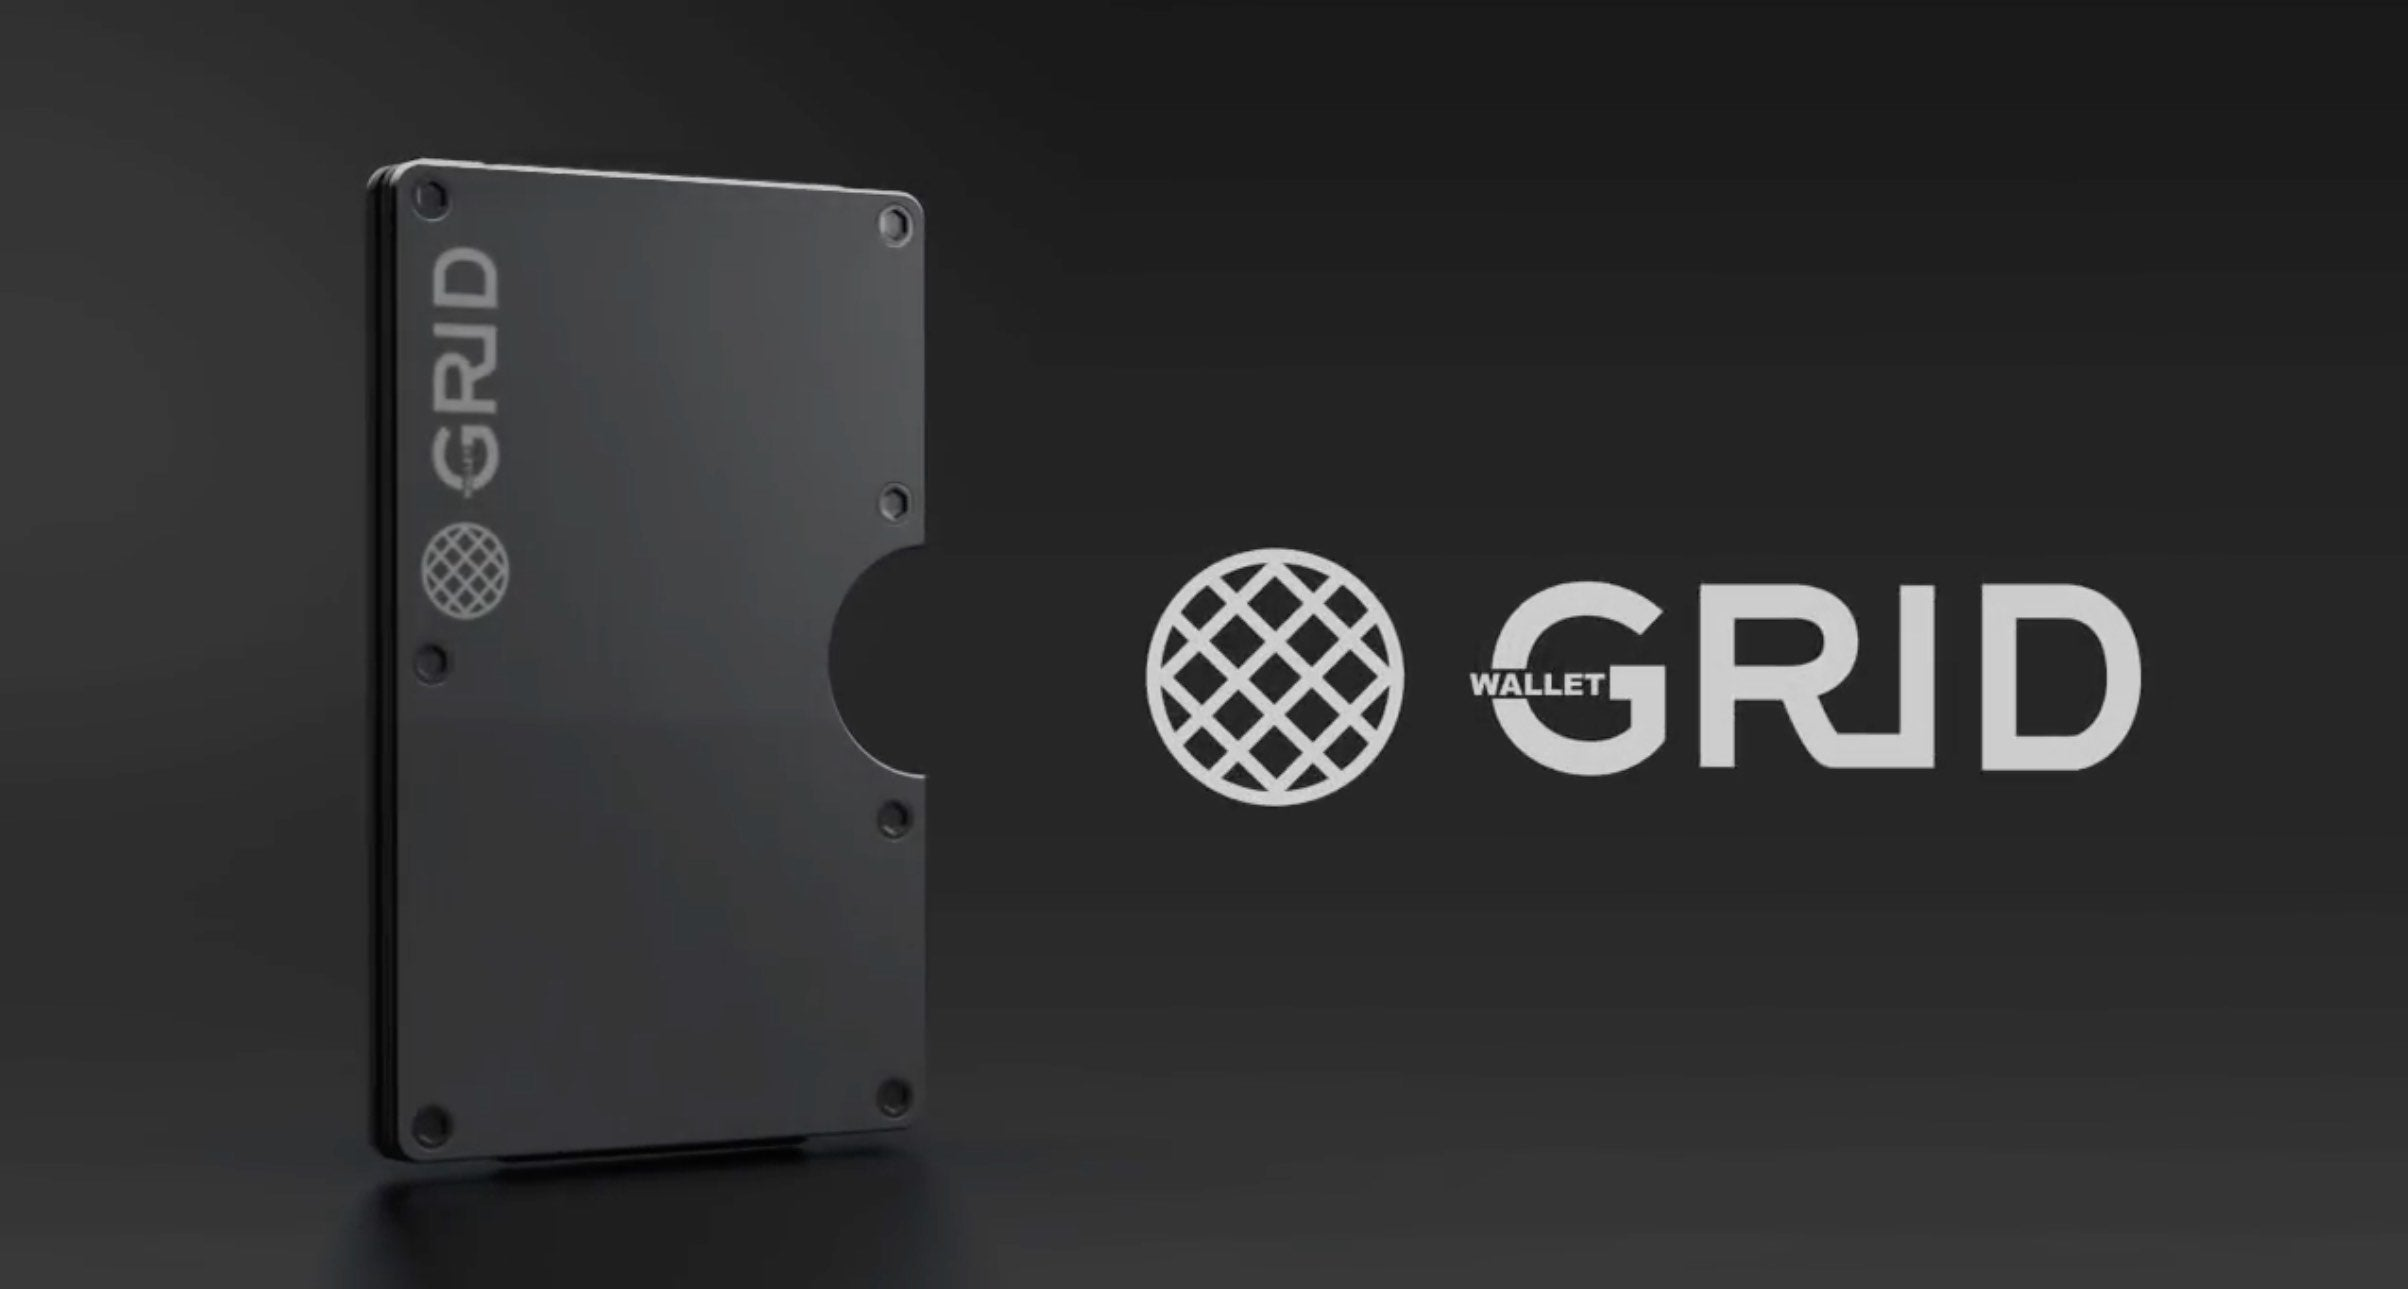 Ultra Slim Wallet By Grid Minimalistic Design With Rfid Protection